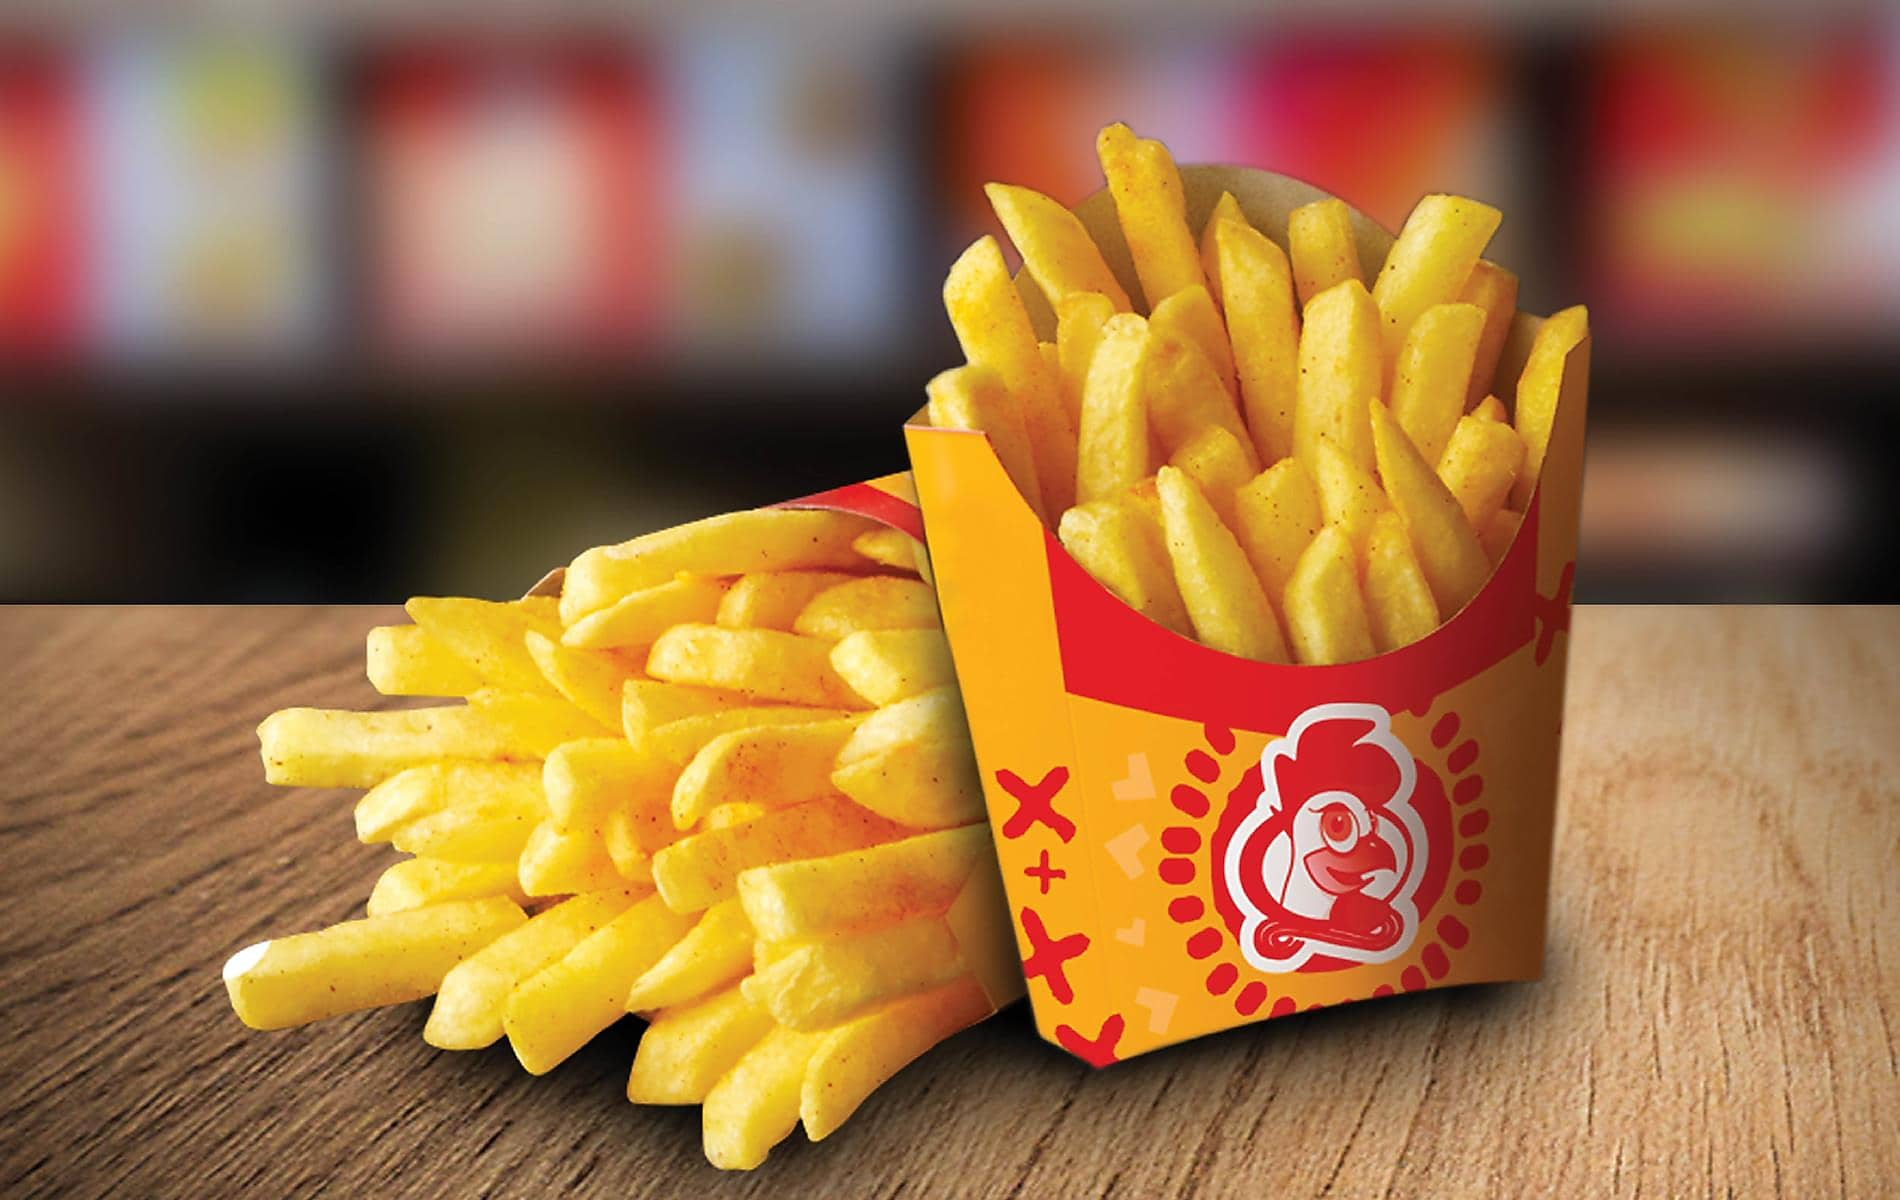 Double Deal Monday 2 x Large Chips for N$29.90